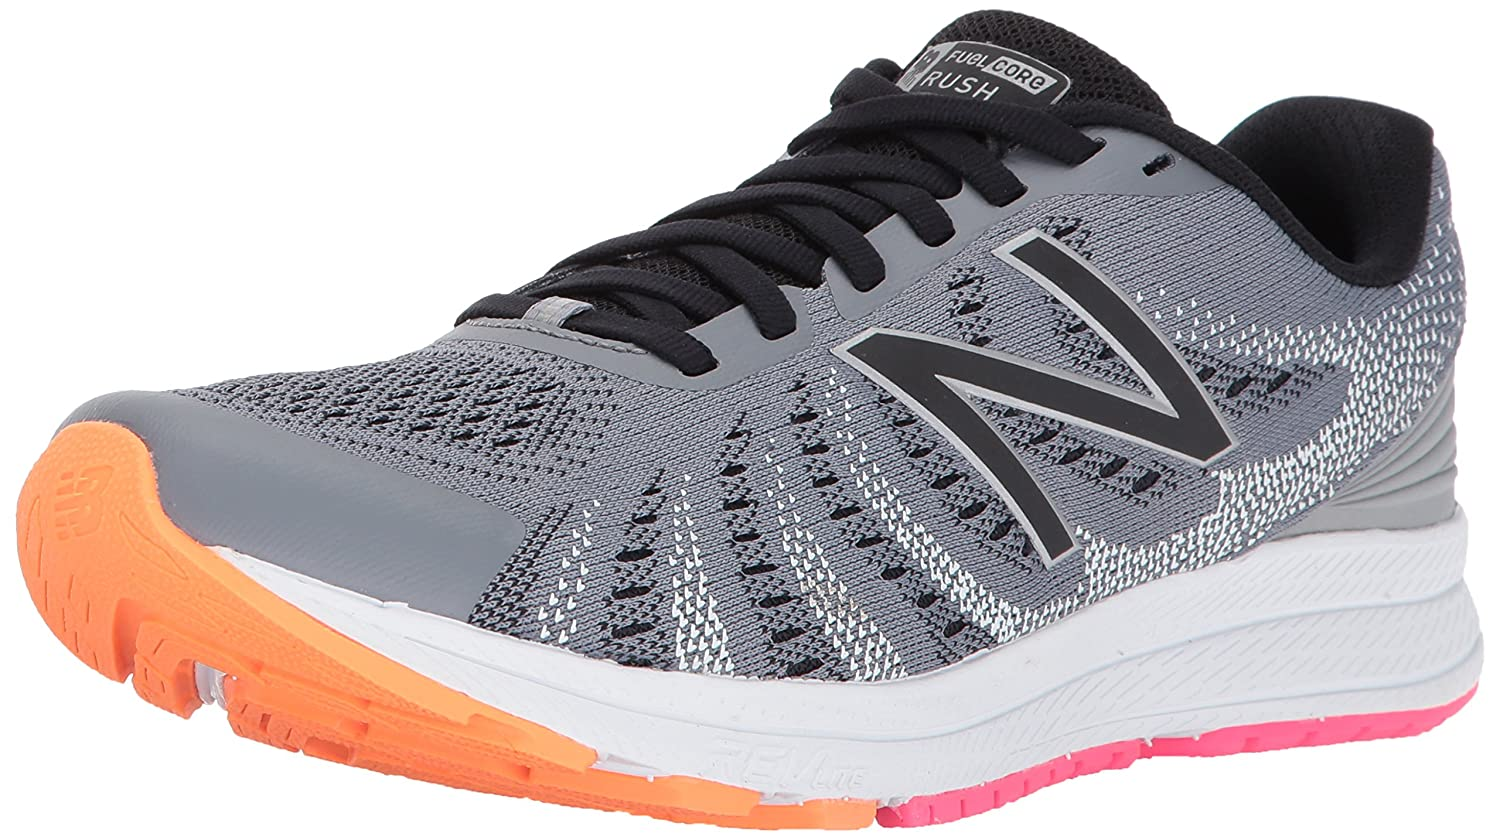 New Balance Women's Rushv3 Running-Shoes B01N43MA8K 8 B(M) US|Steel/Black